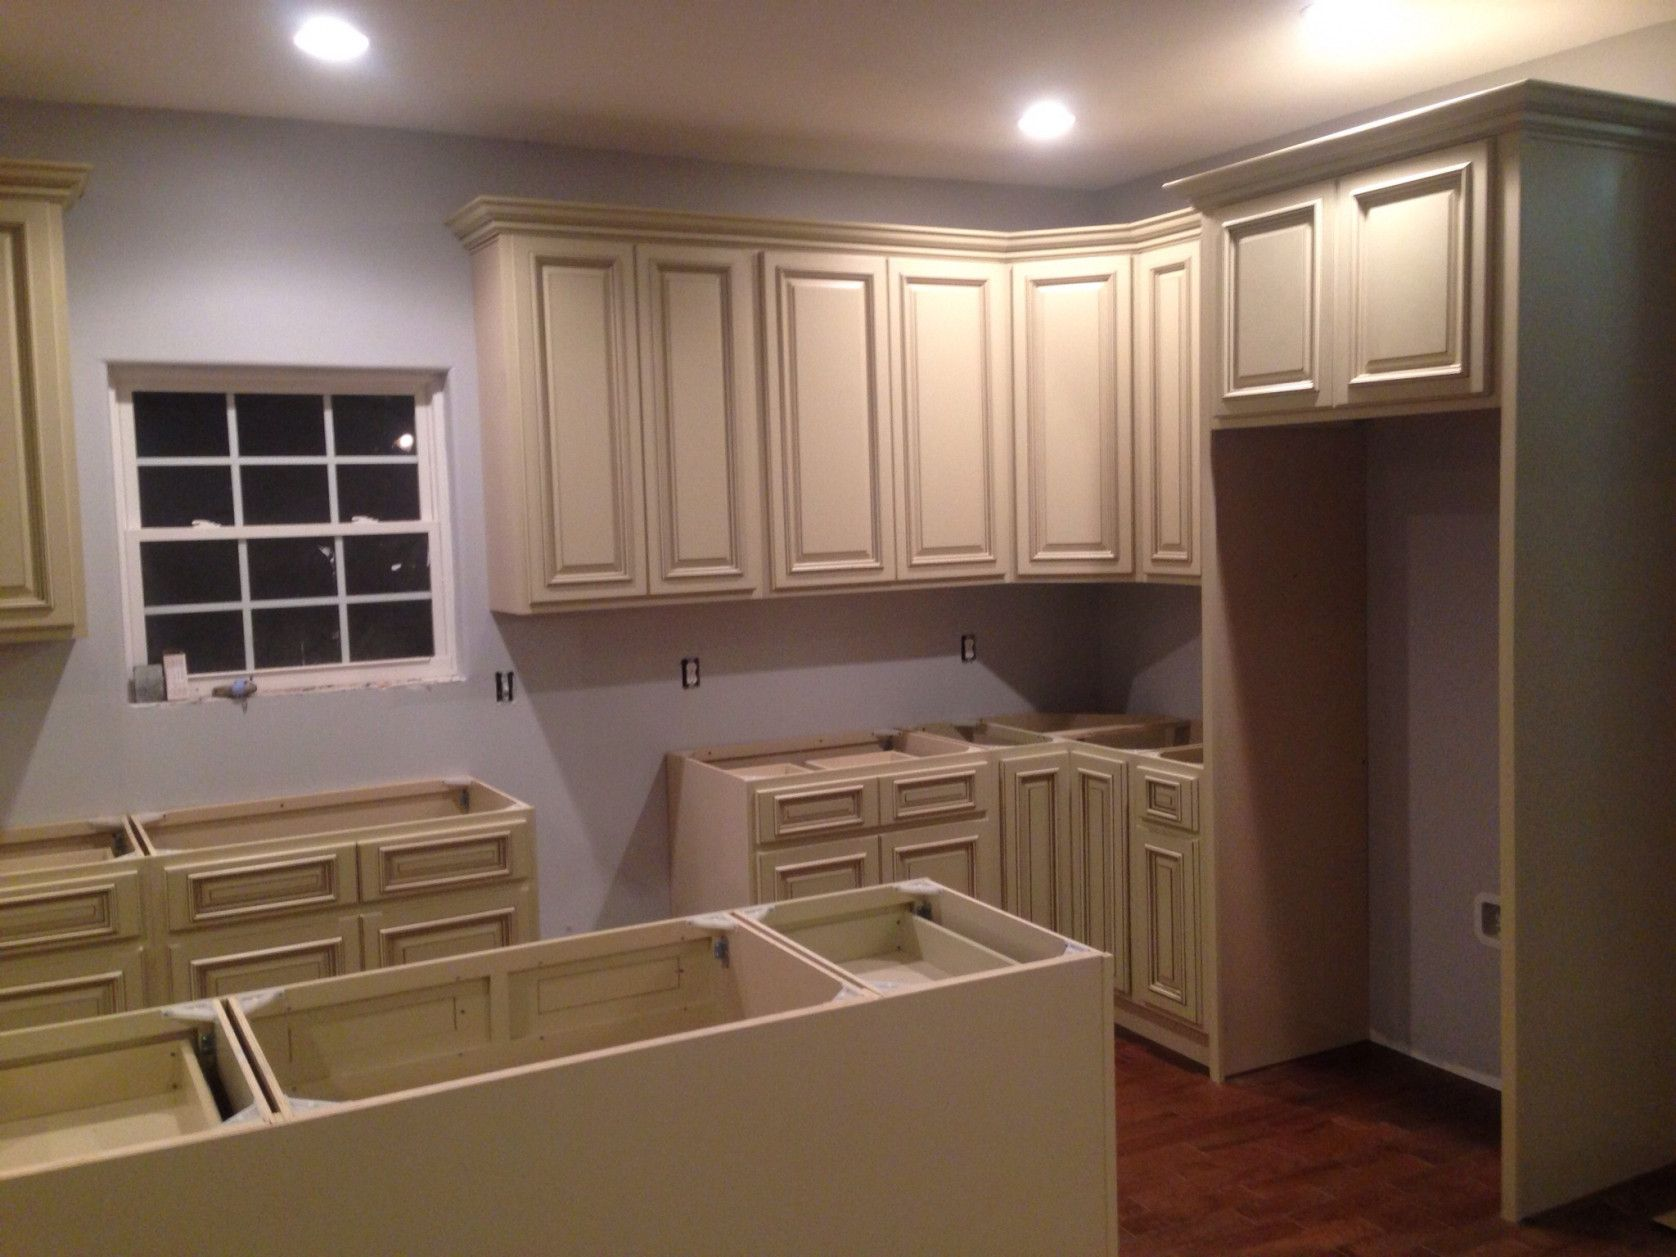 2018 Used Kitchen Cabinets Ma - Kitchen Decorating Ideas themes ...